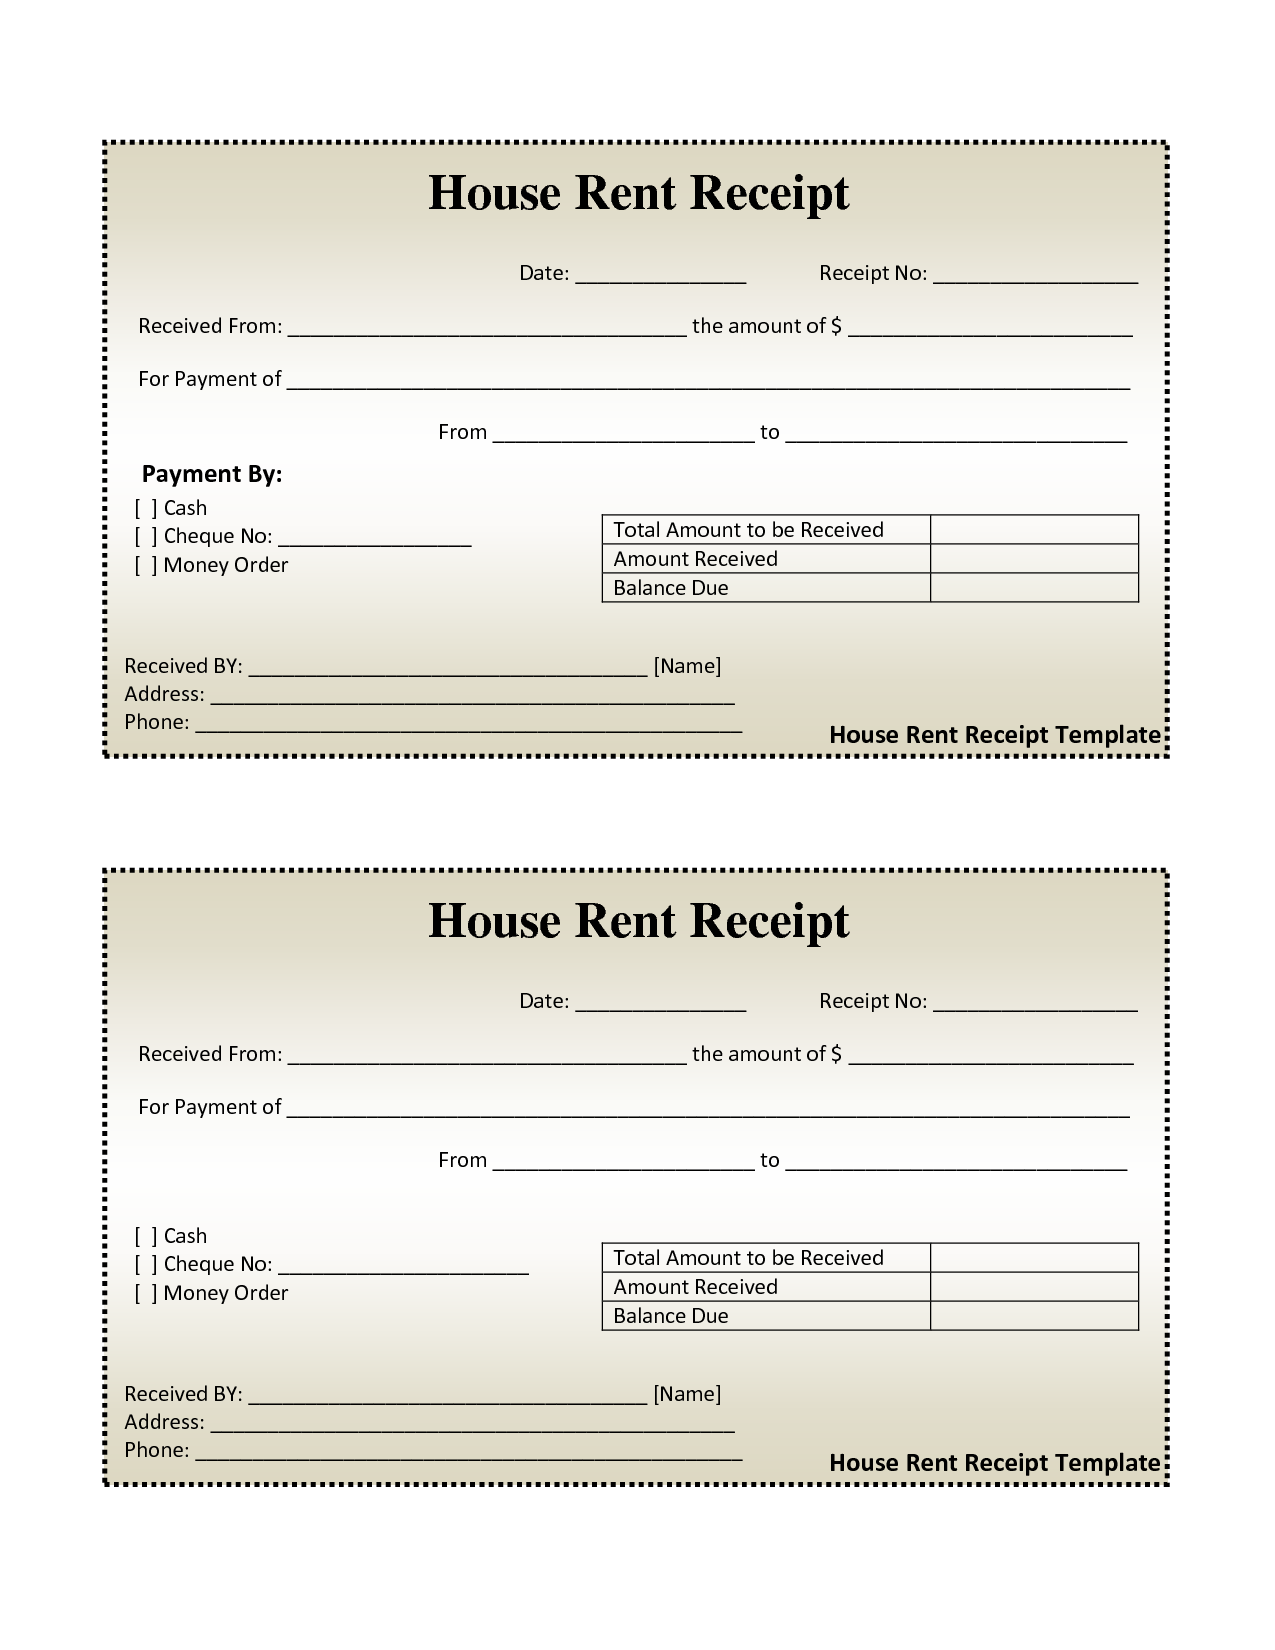 house rent receipt – Format for House Rent Receipt